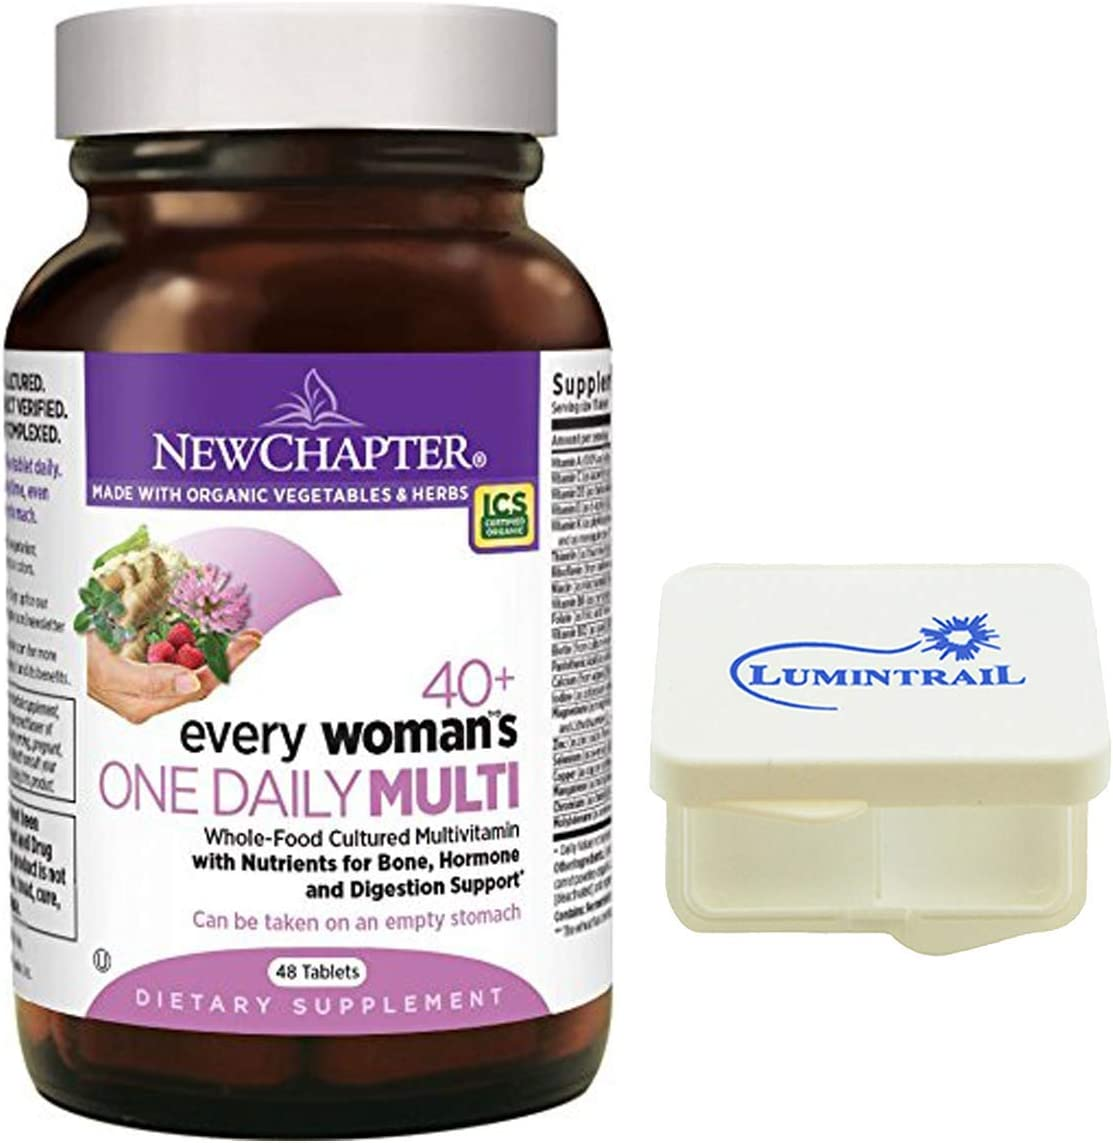 New Chapter Every Woman s One Daily 40 , Women s Multivitamin with Probiotics, Vitamin D3, B Vitamins – 48 Tablets Bundle with a Lumintrail Pill Case